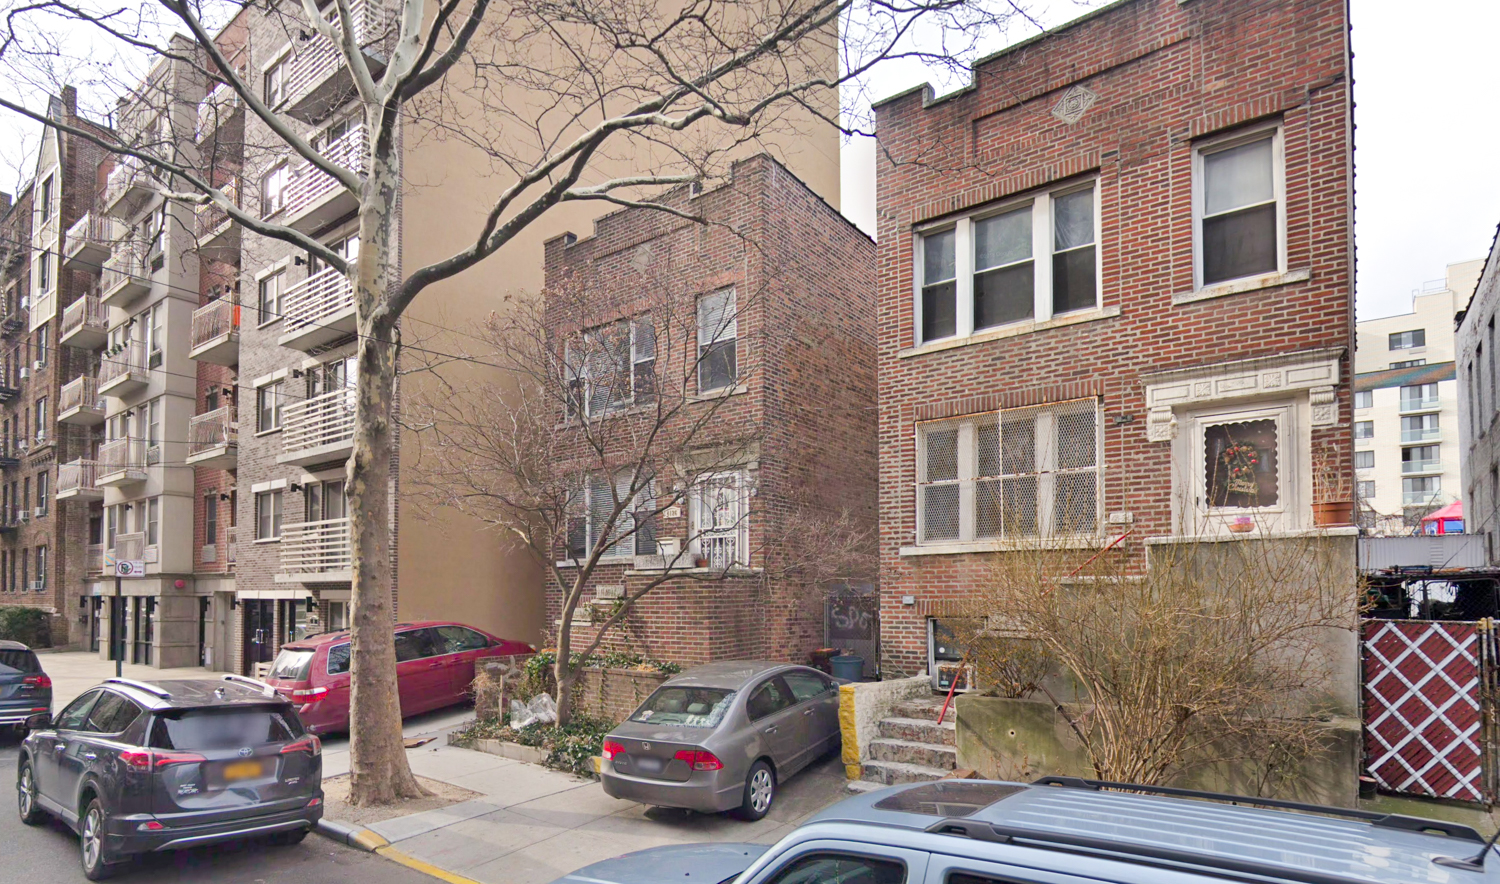 41-26 44th Street, via Google Maps